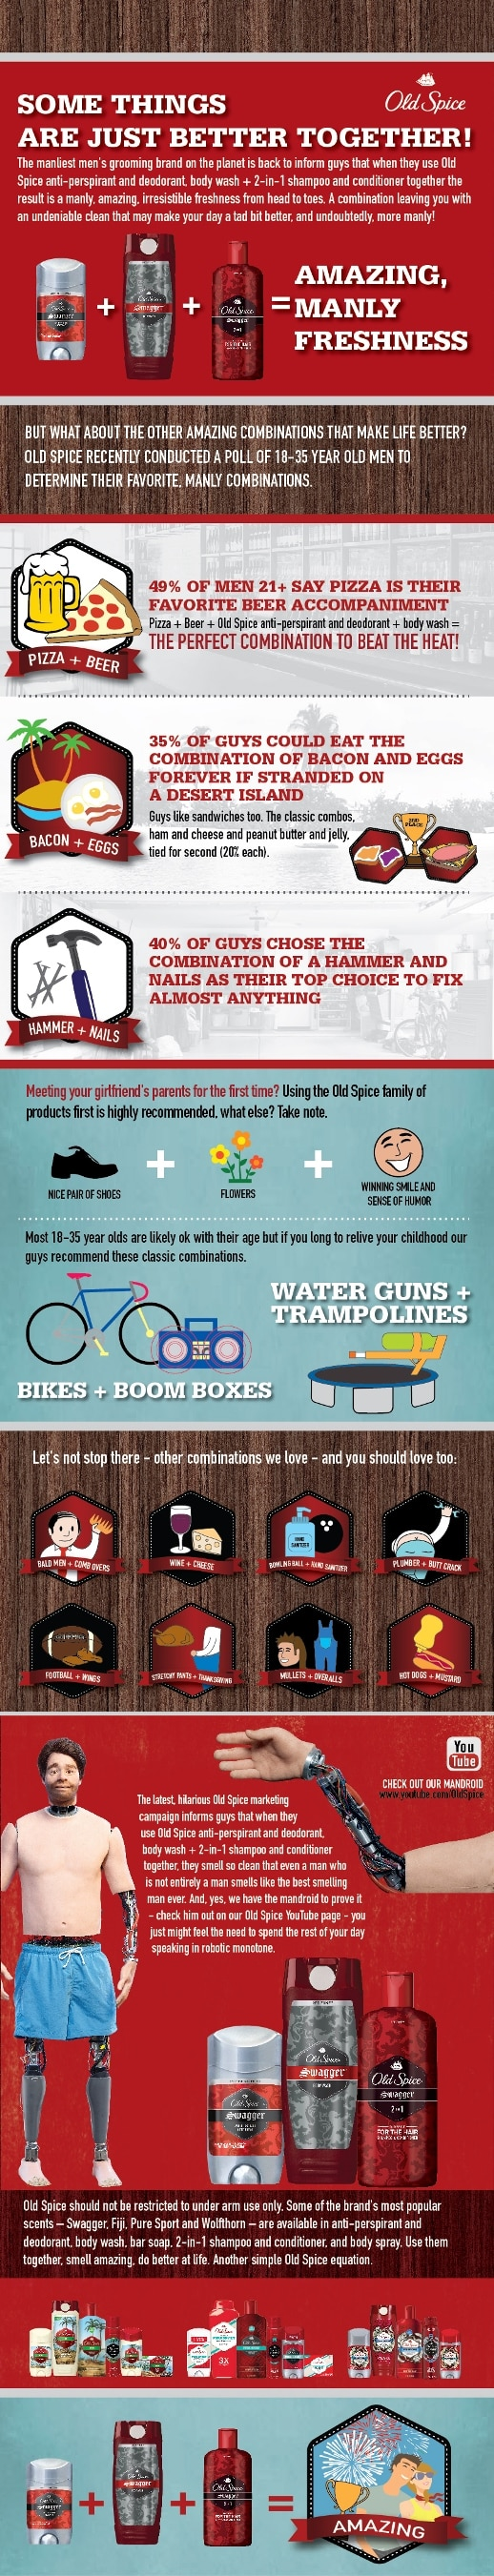 OldSpice_Infographic_FINAL